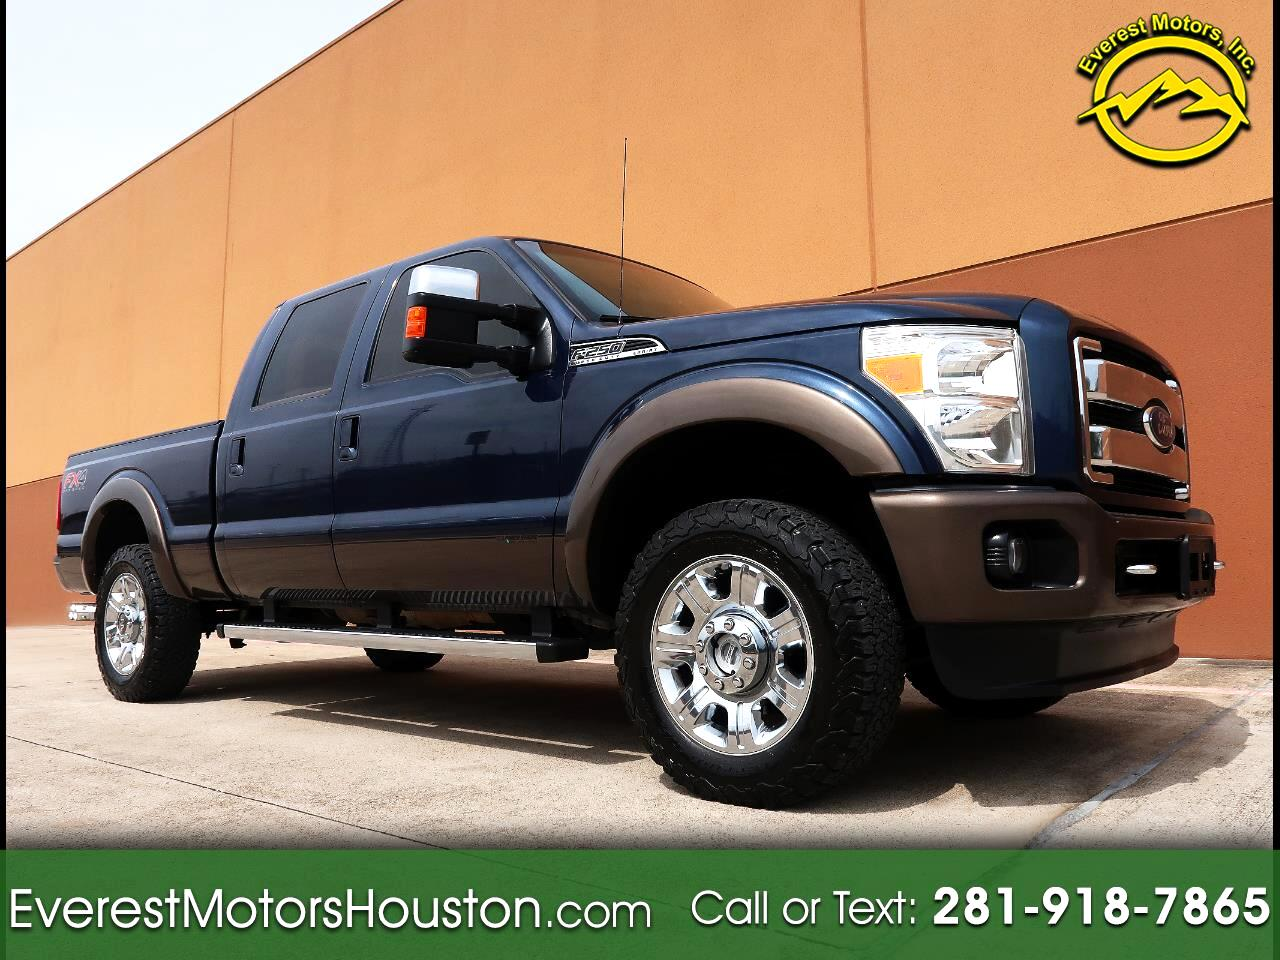 2015 Ford F-250 SD KING RANCH CREW CAB SHORT BED 4WD NAV CAM ROOF